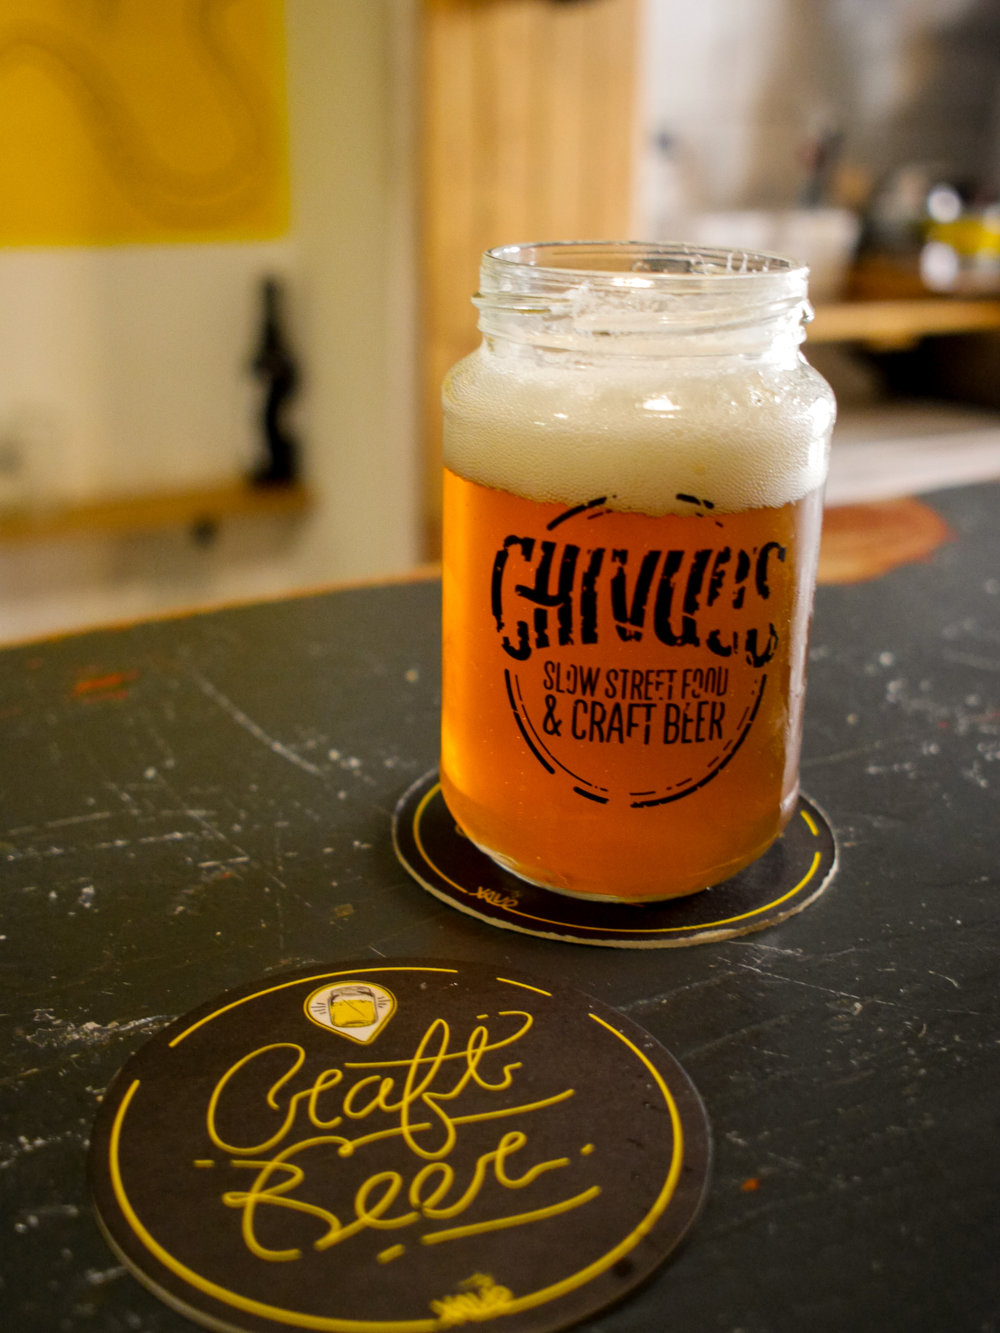 Craft beer at Chivuo's Slow Street Food